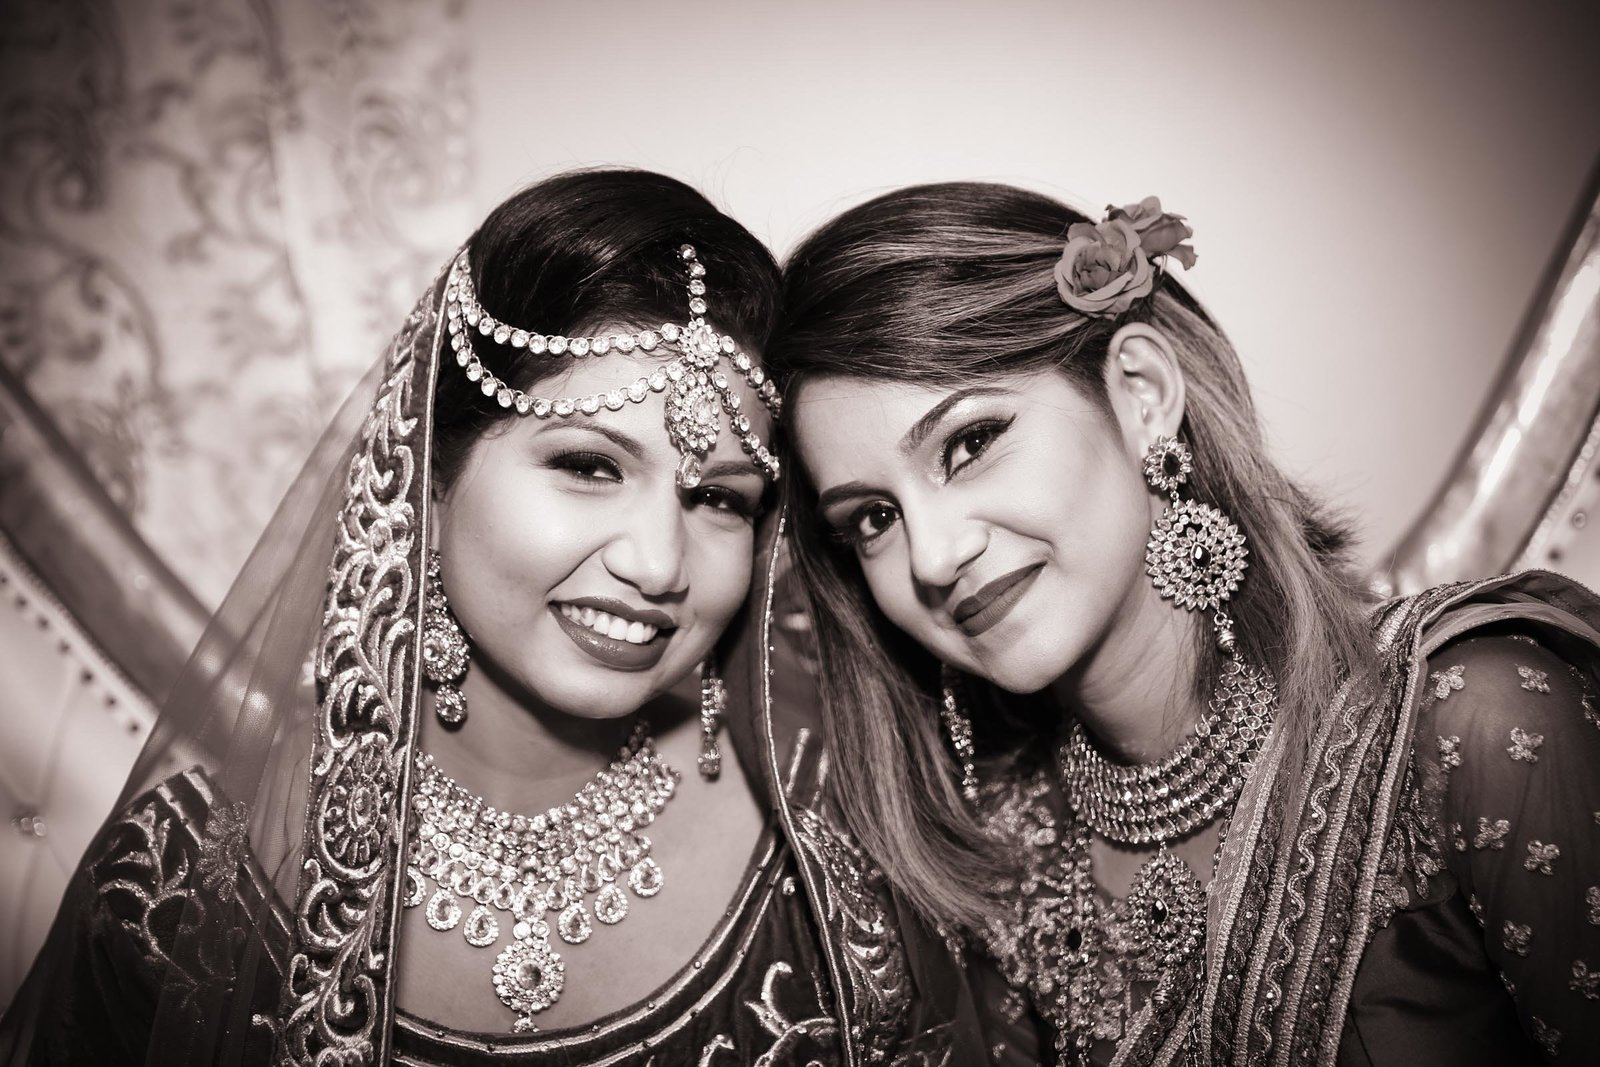 Sisters at Indian wedding in B+W. Photo by Ross Photography, Trinidad, W.I..